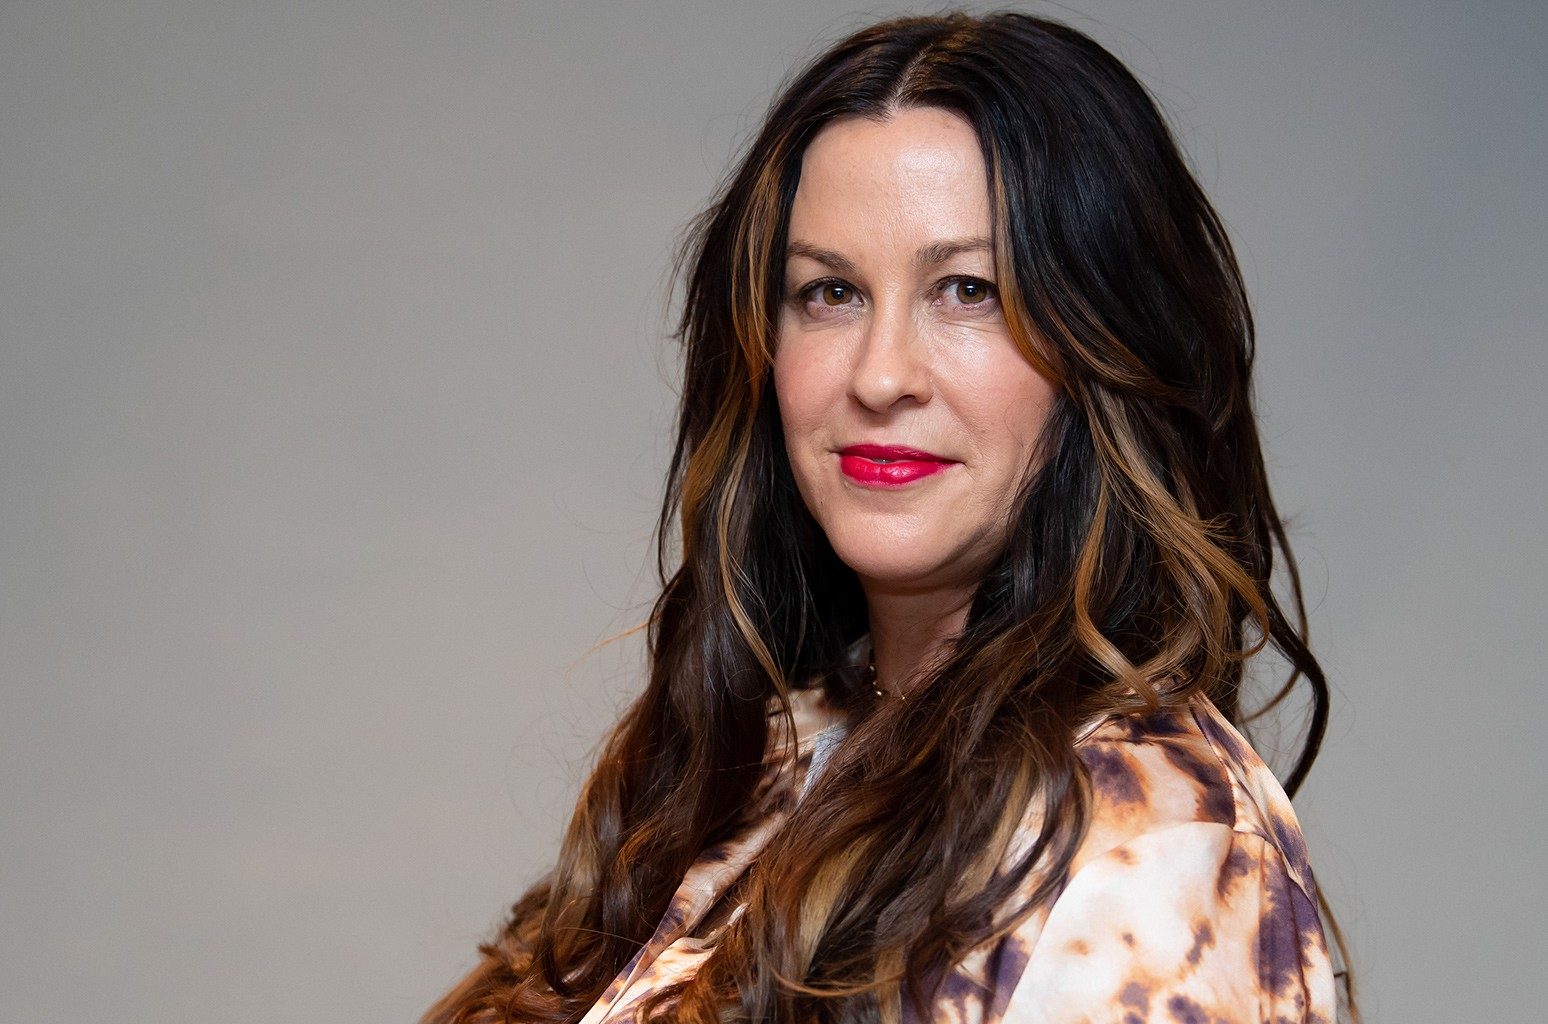 Alanis Morissette Criticizes HBO's 'Jagged' Doc: 'This Was Not the Story I Agreed to Tell'